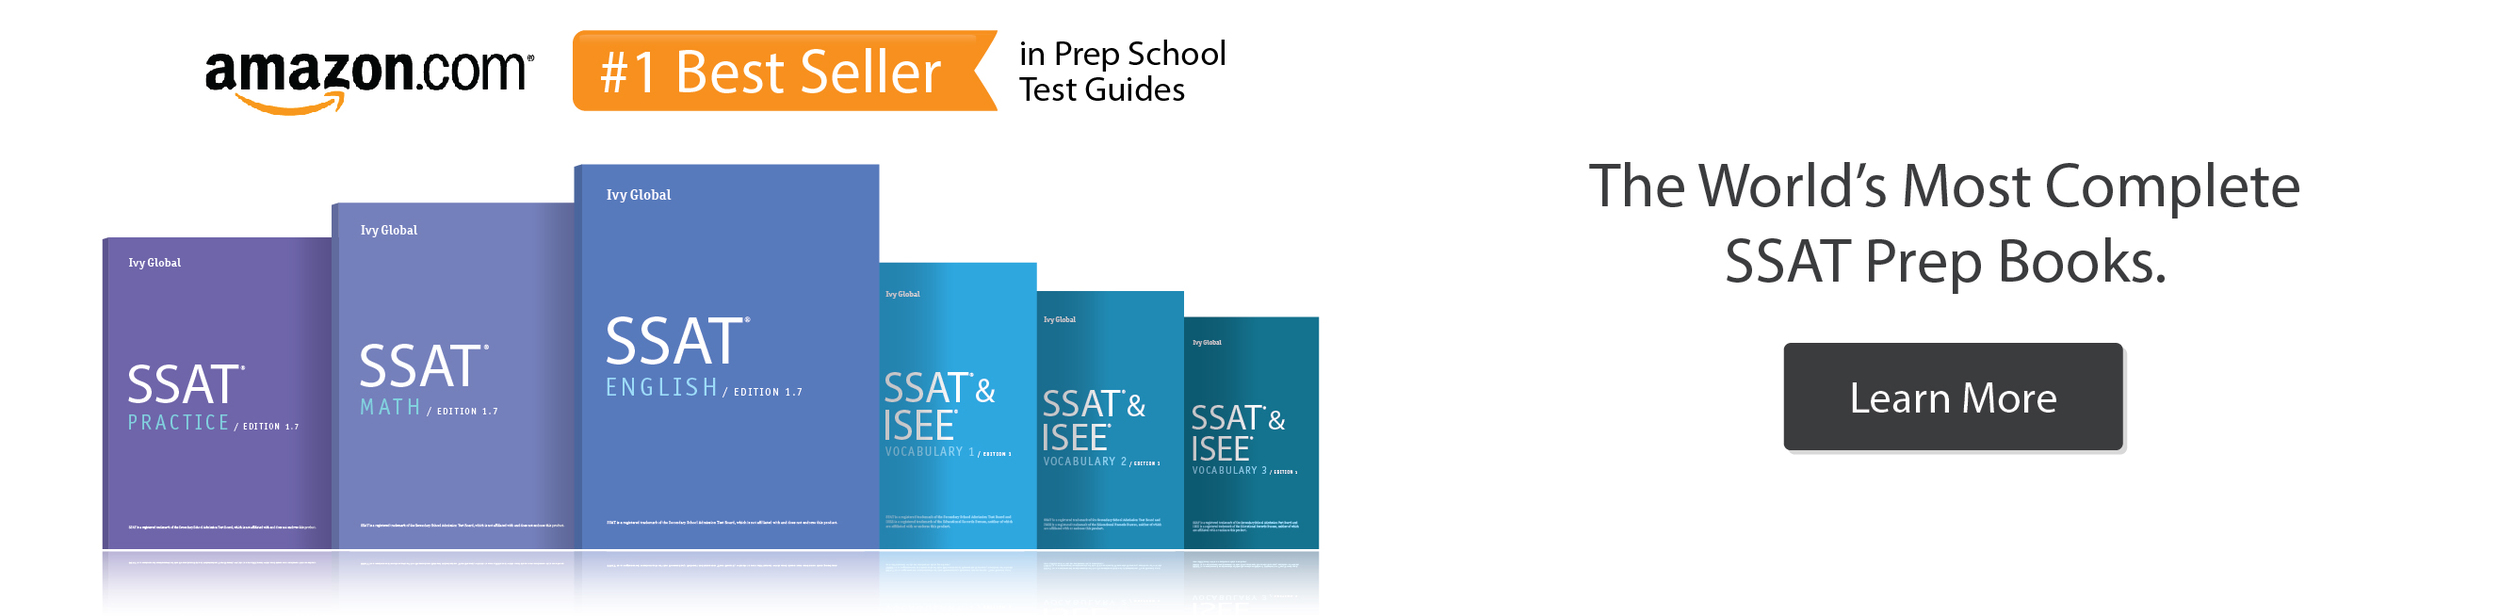 Free SSAT Practice Tests — Ivy Global